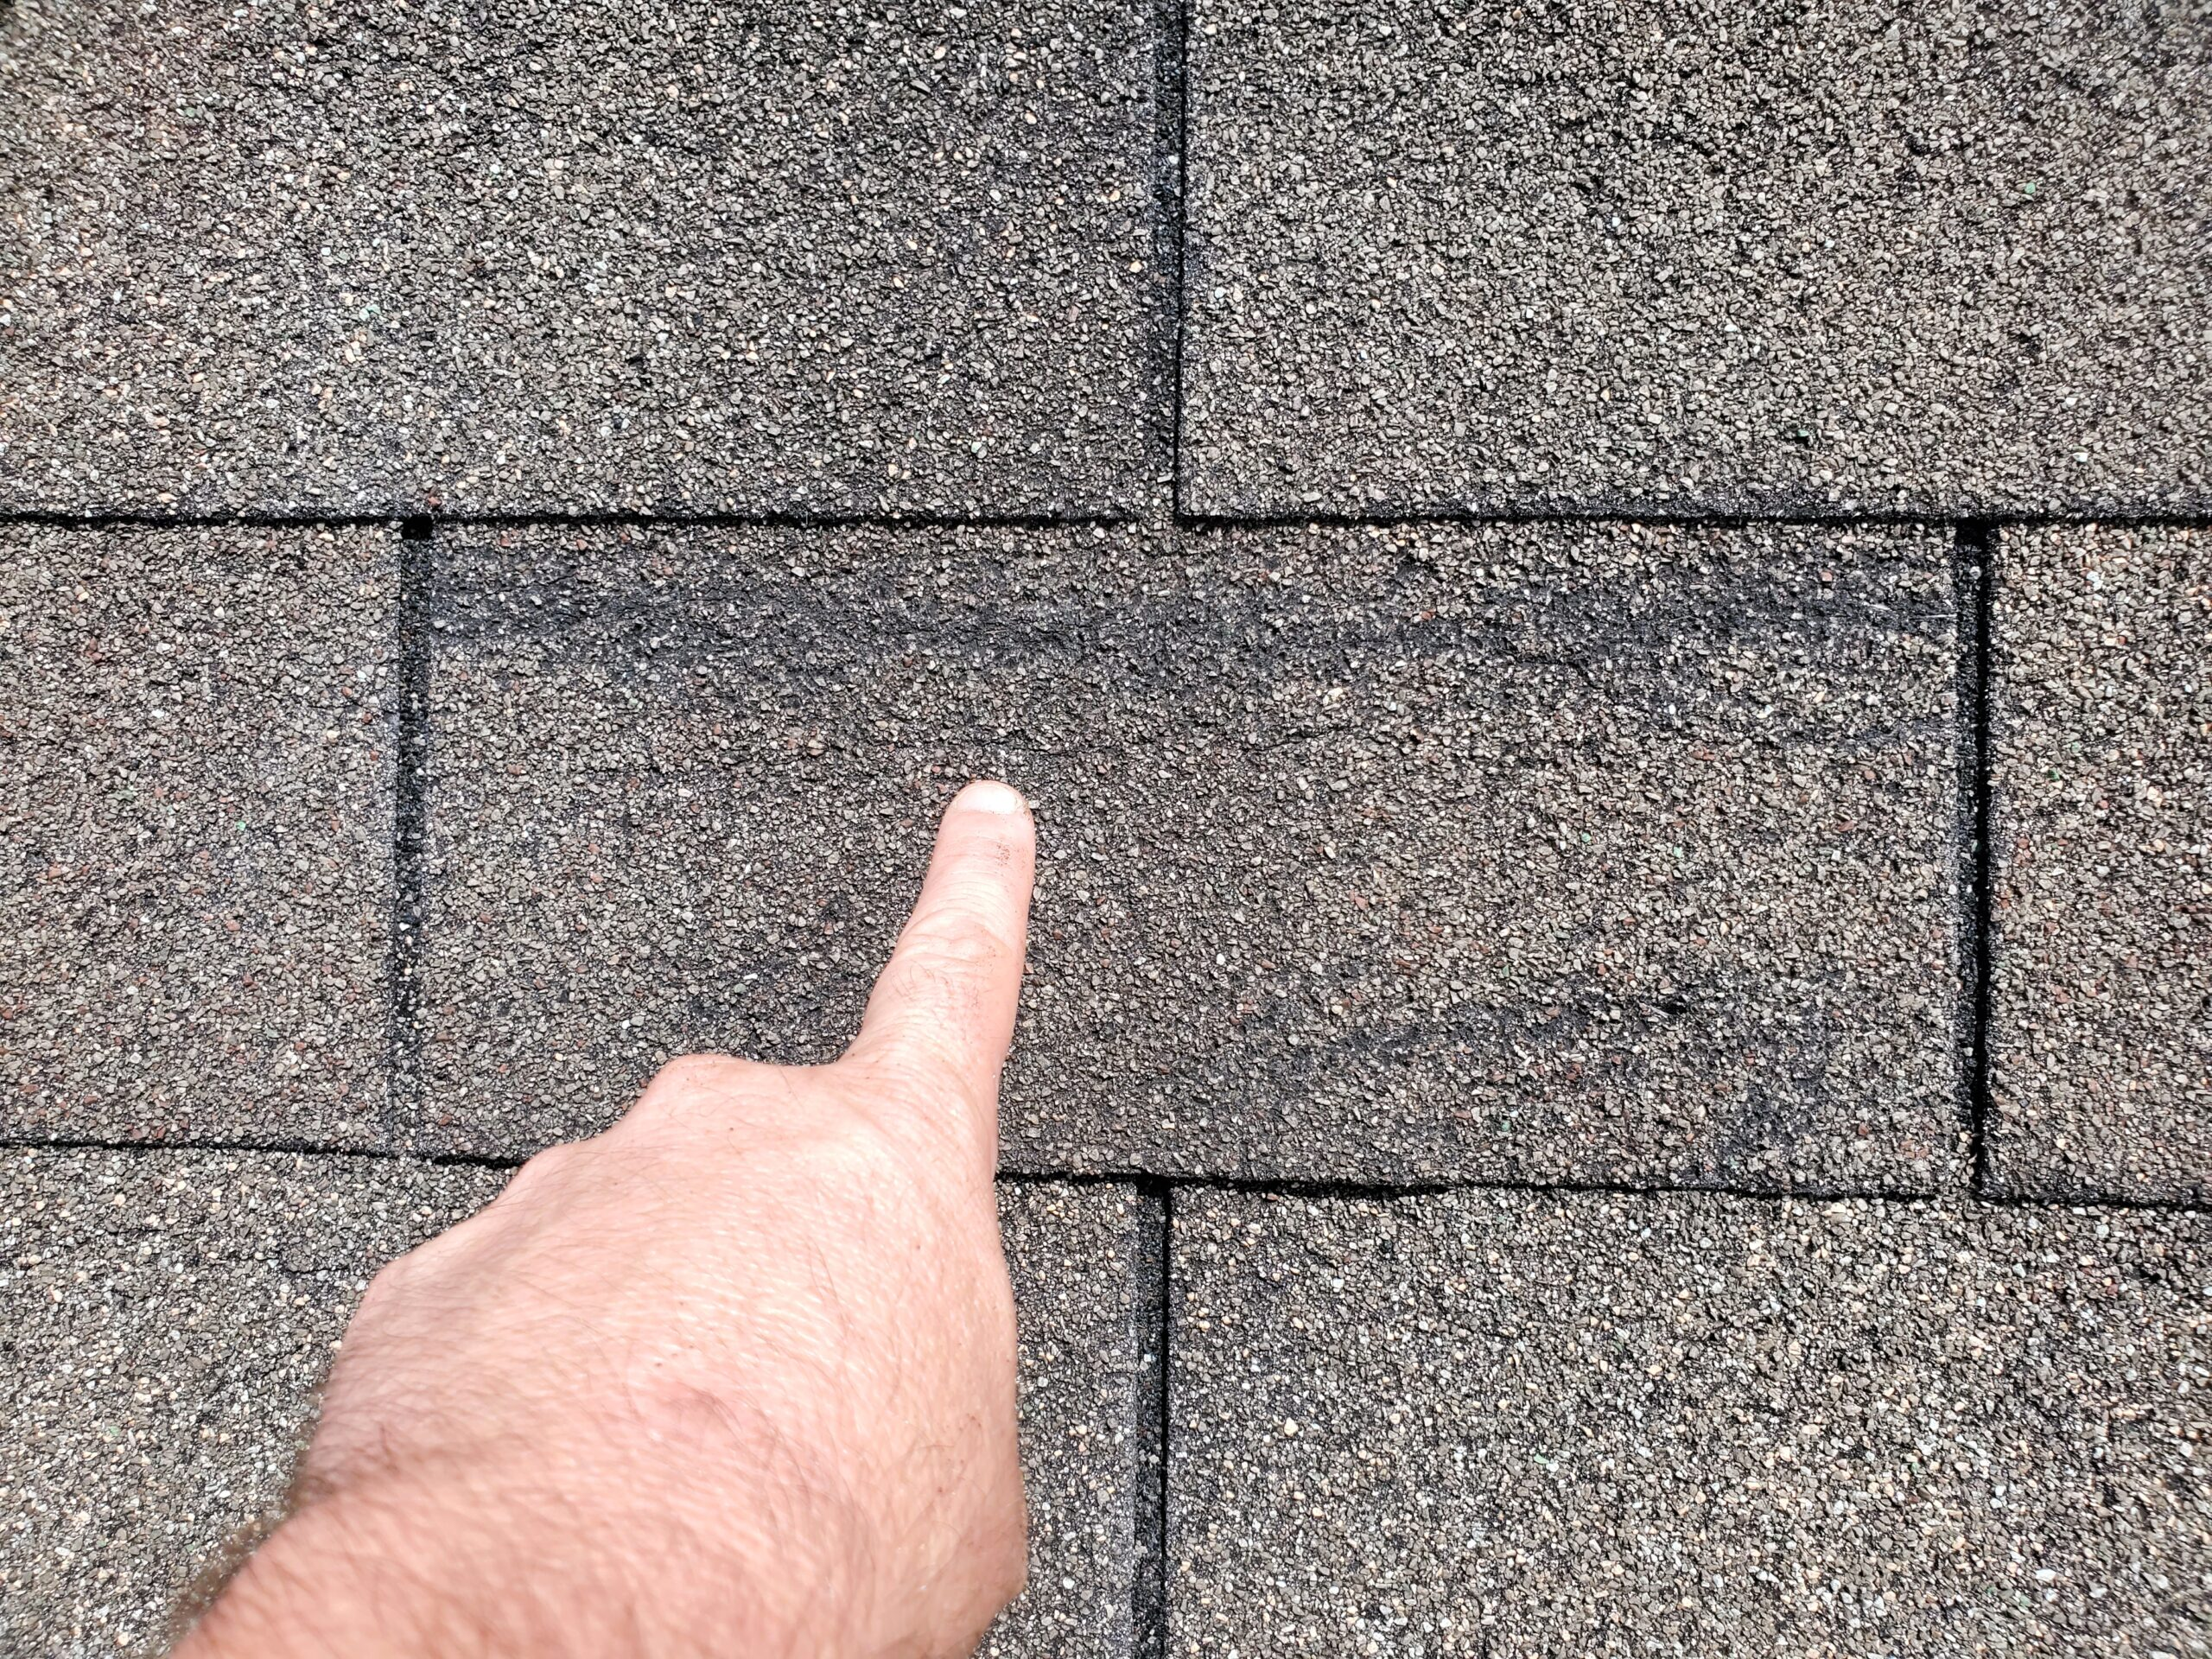 old 3 tab roof with wind damages to shingles